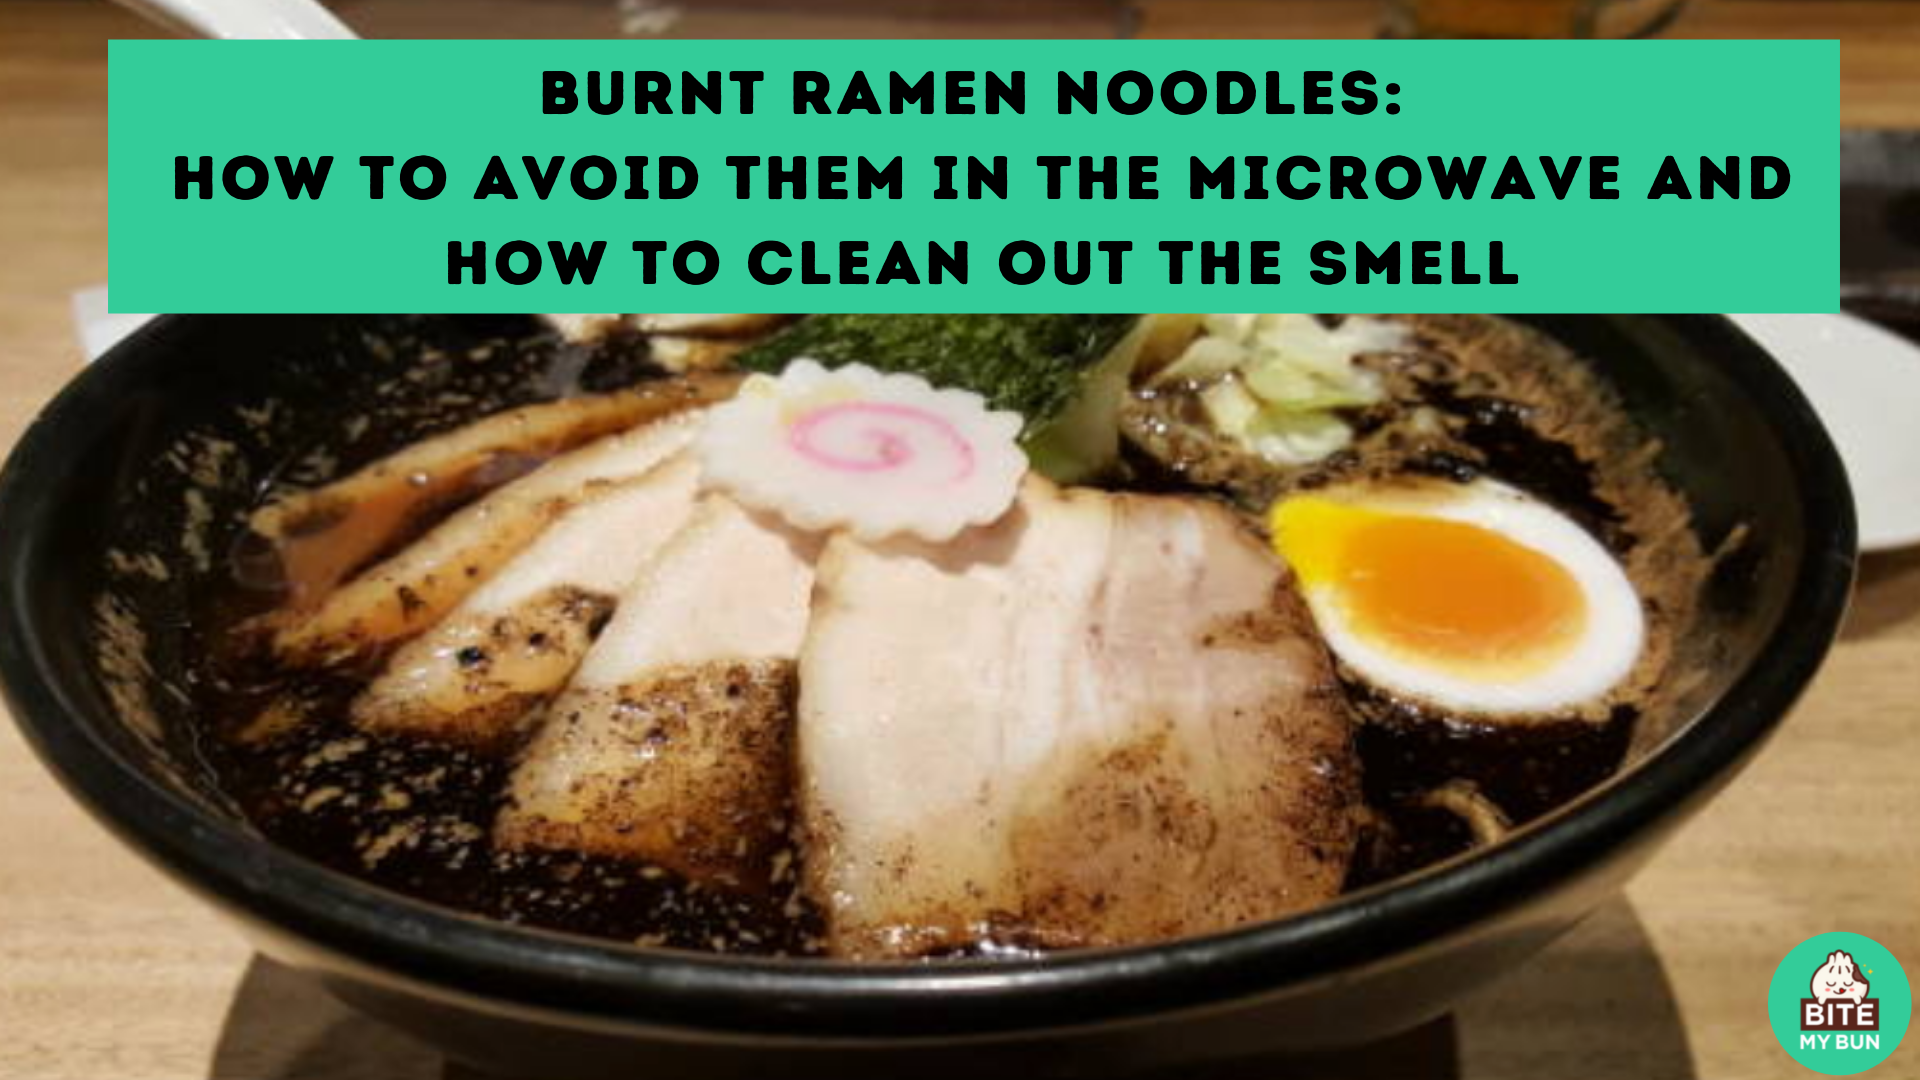 Burnt ramen noodles- how to avoid them in the microwave and how to clean out the smell